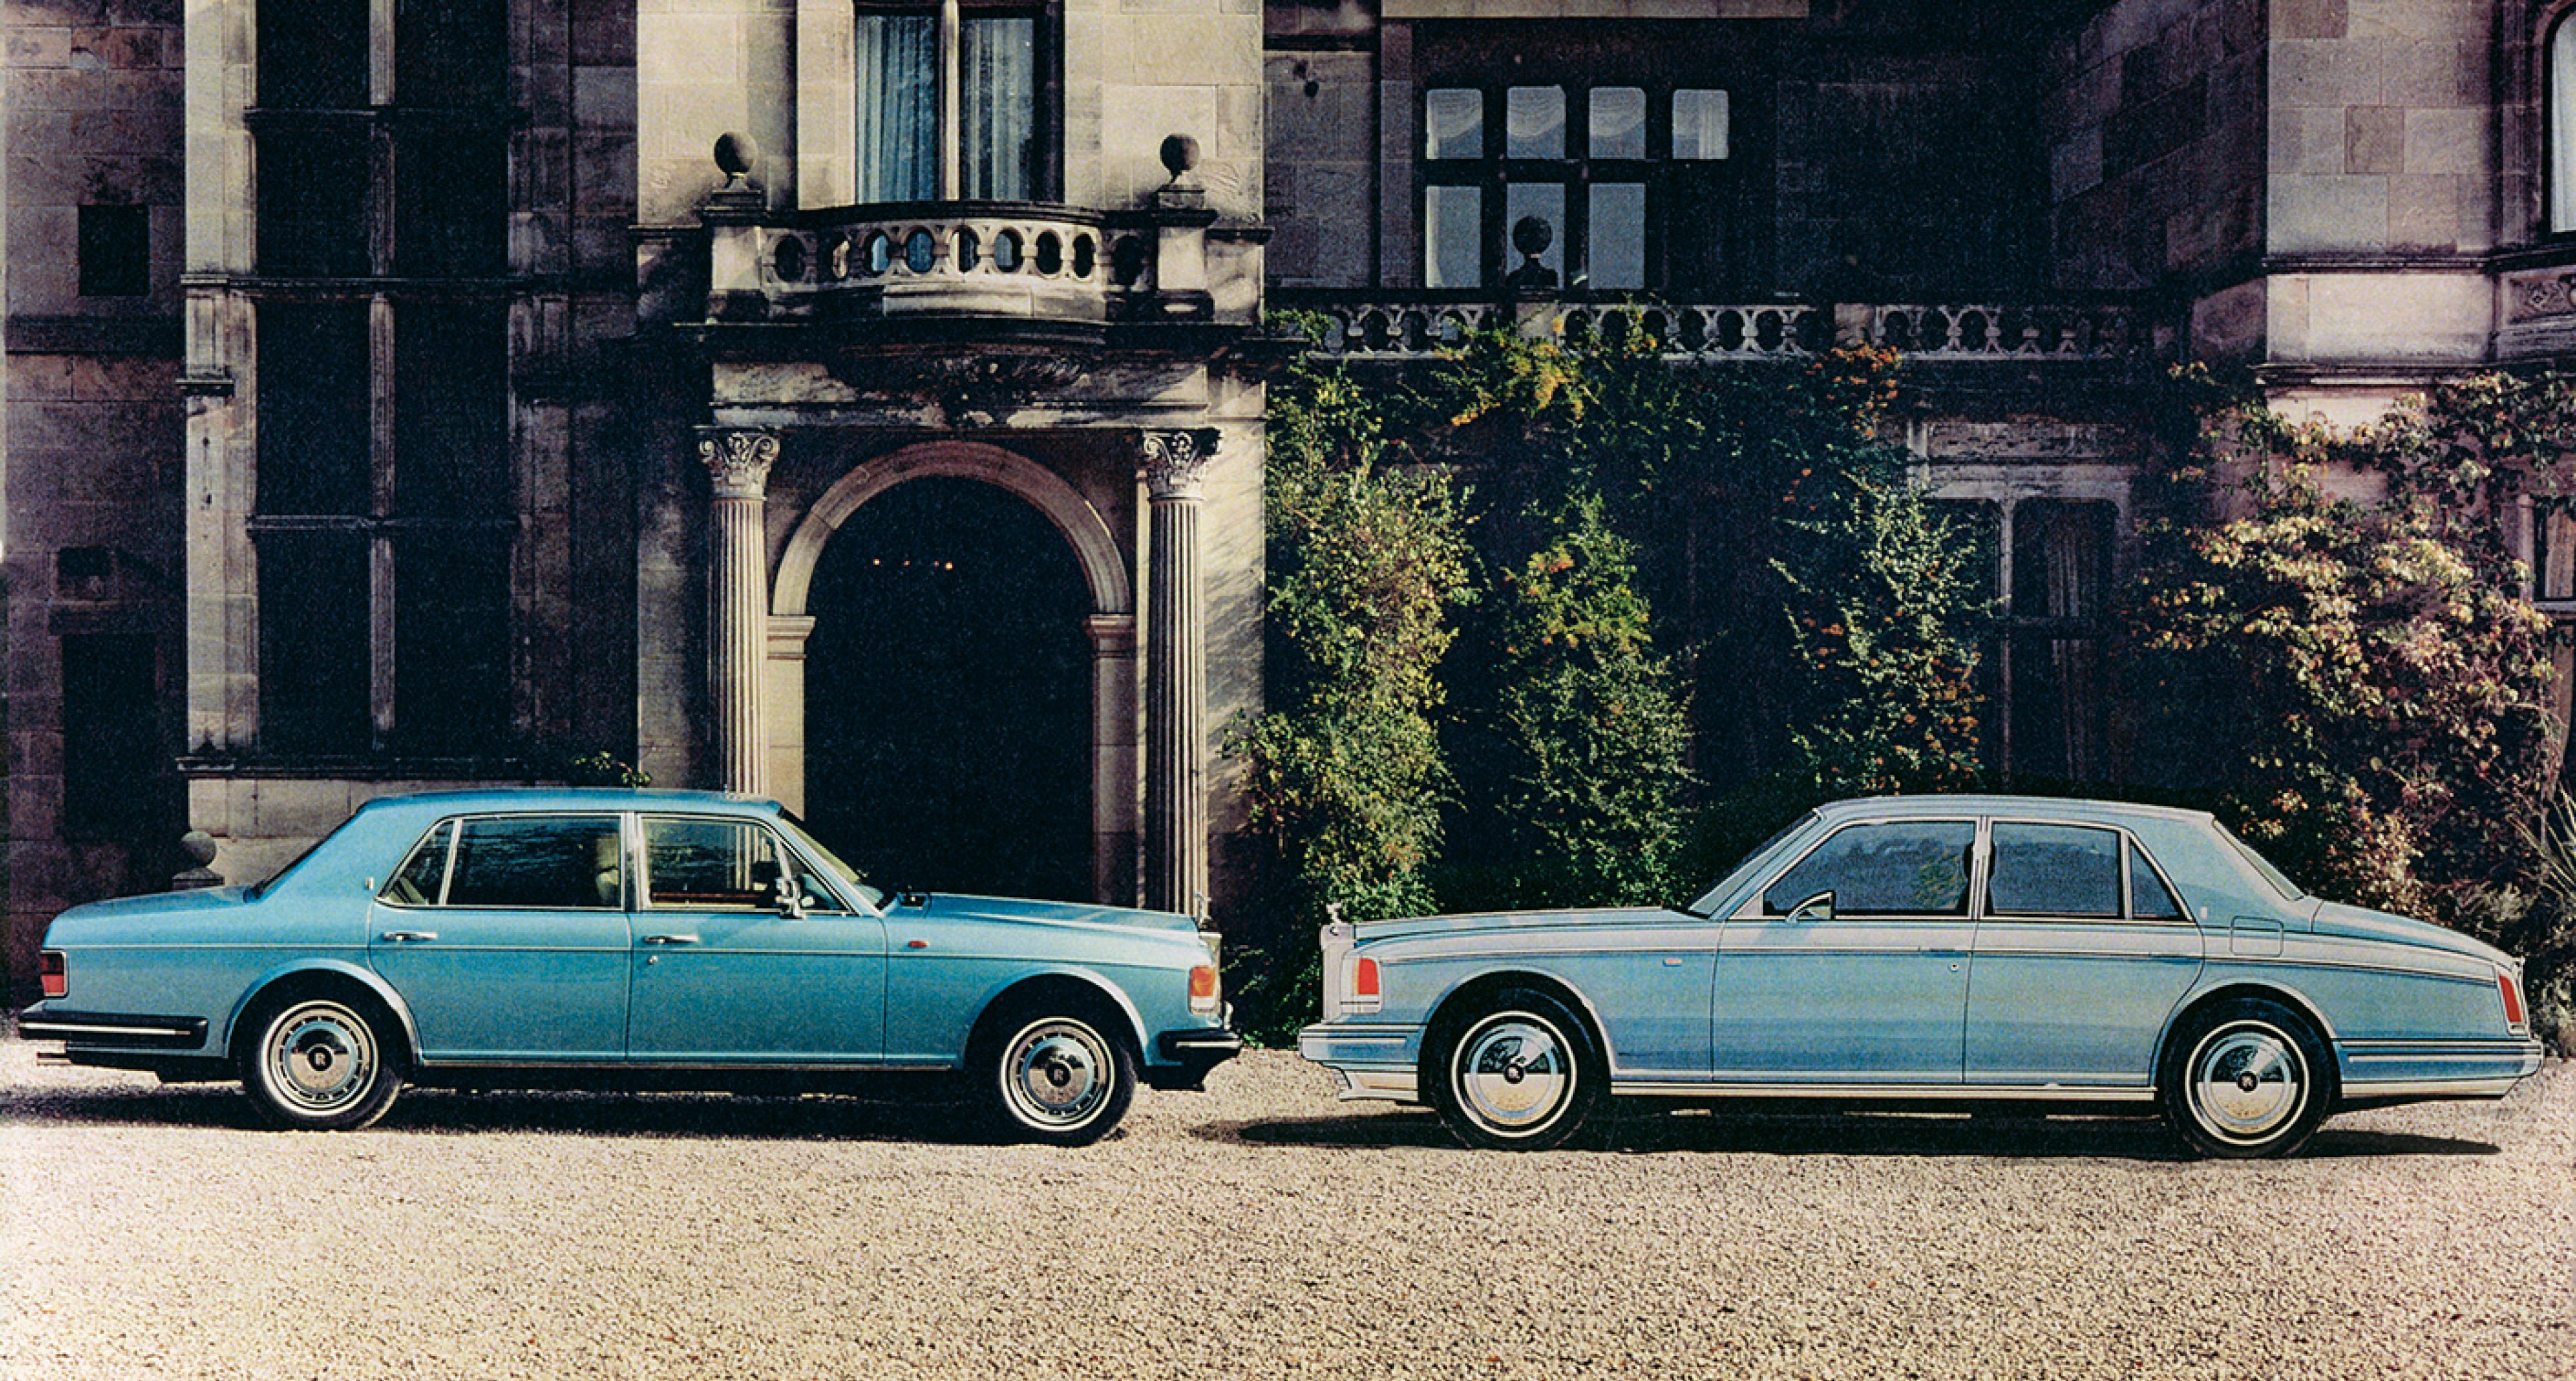 1990: A 'Cloudesque' proposal for the Rolls-Royce Silver Spirit family